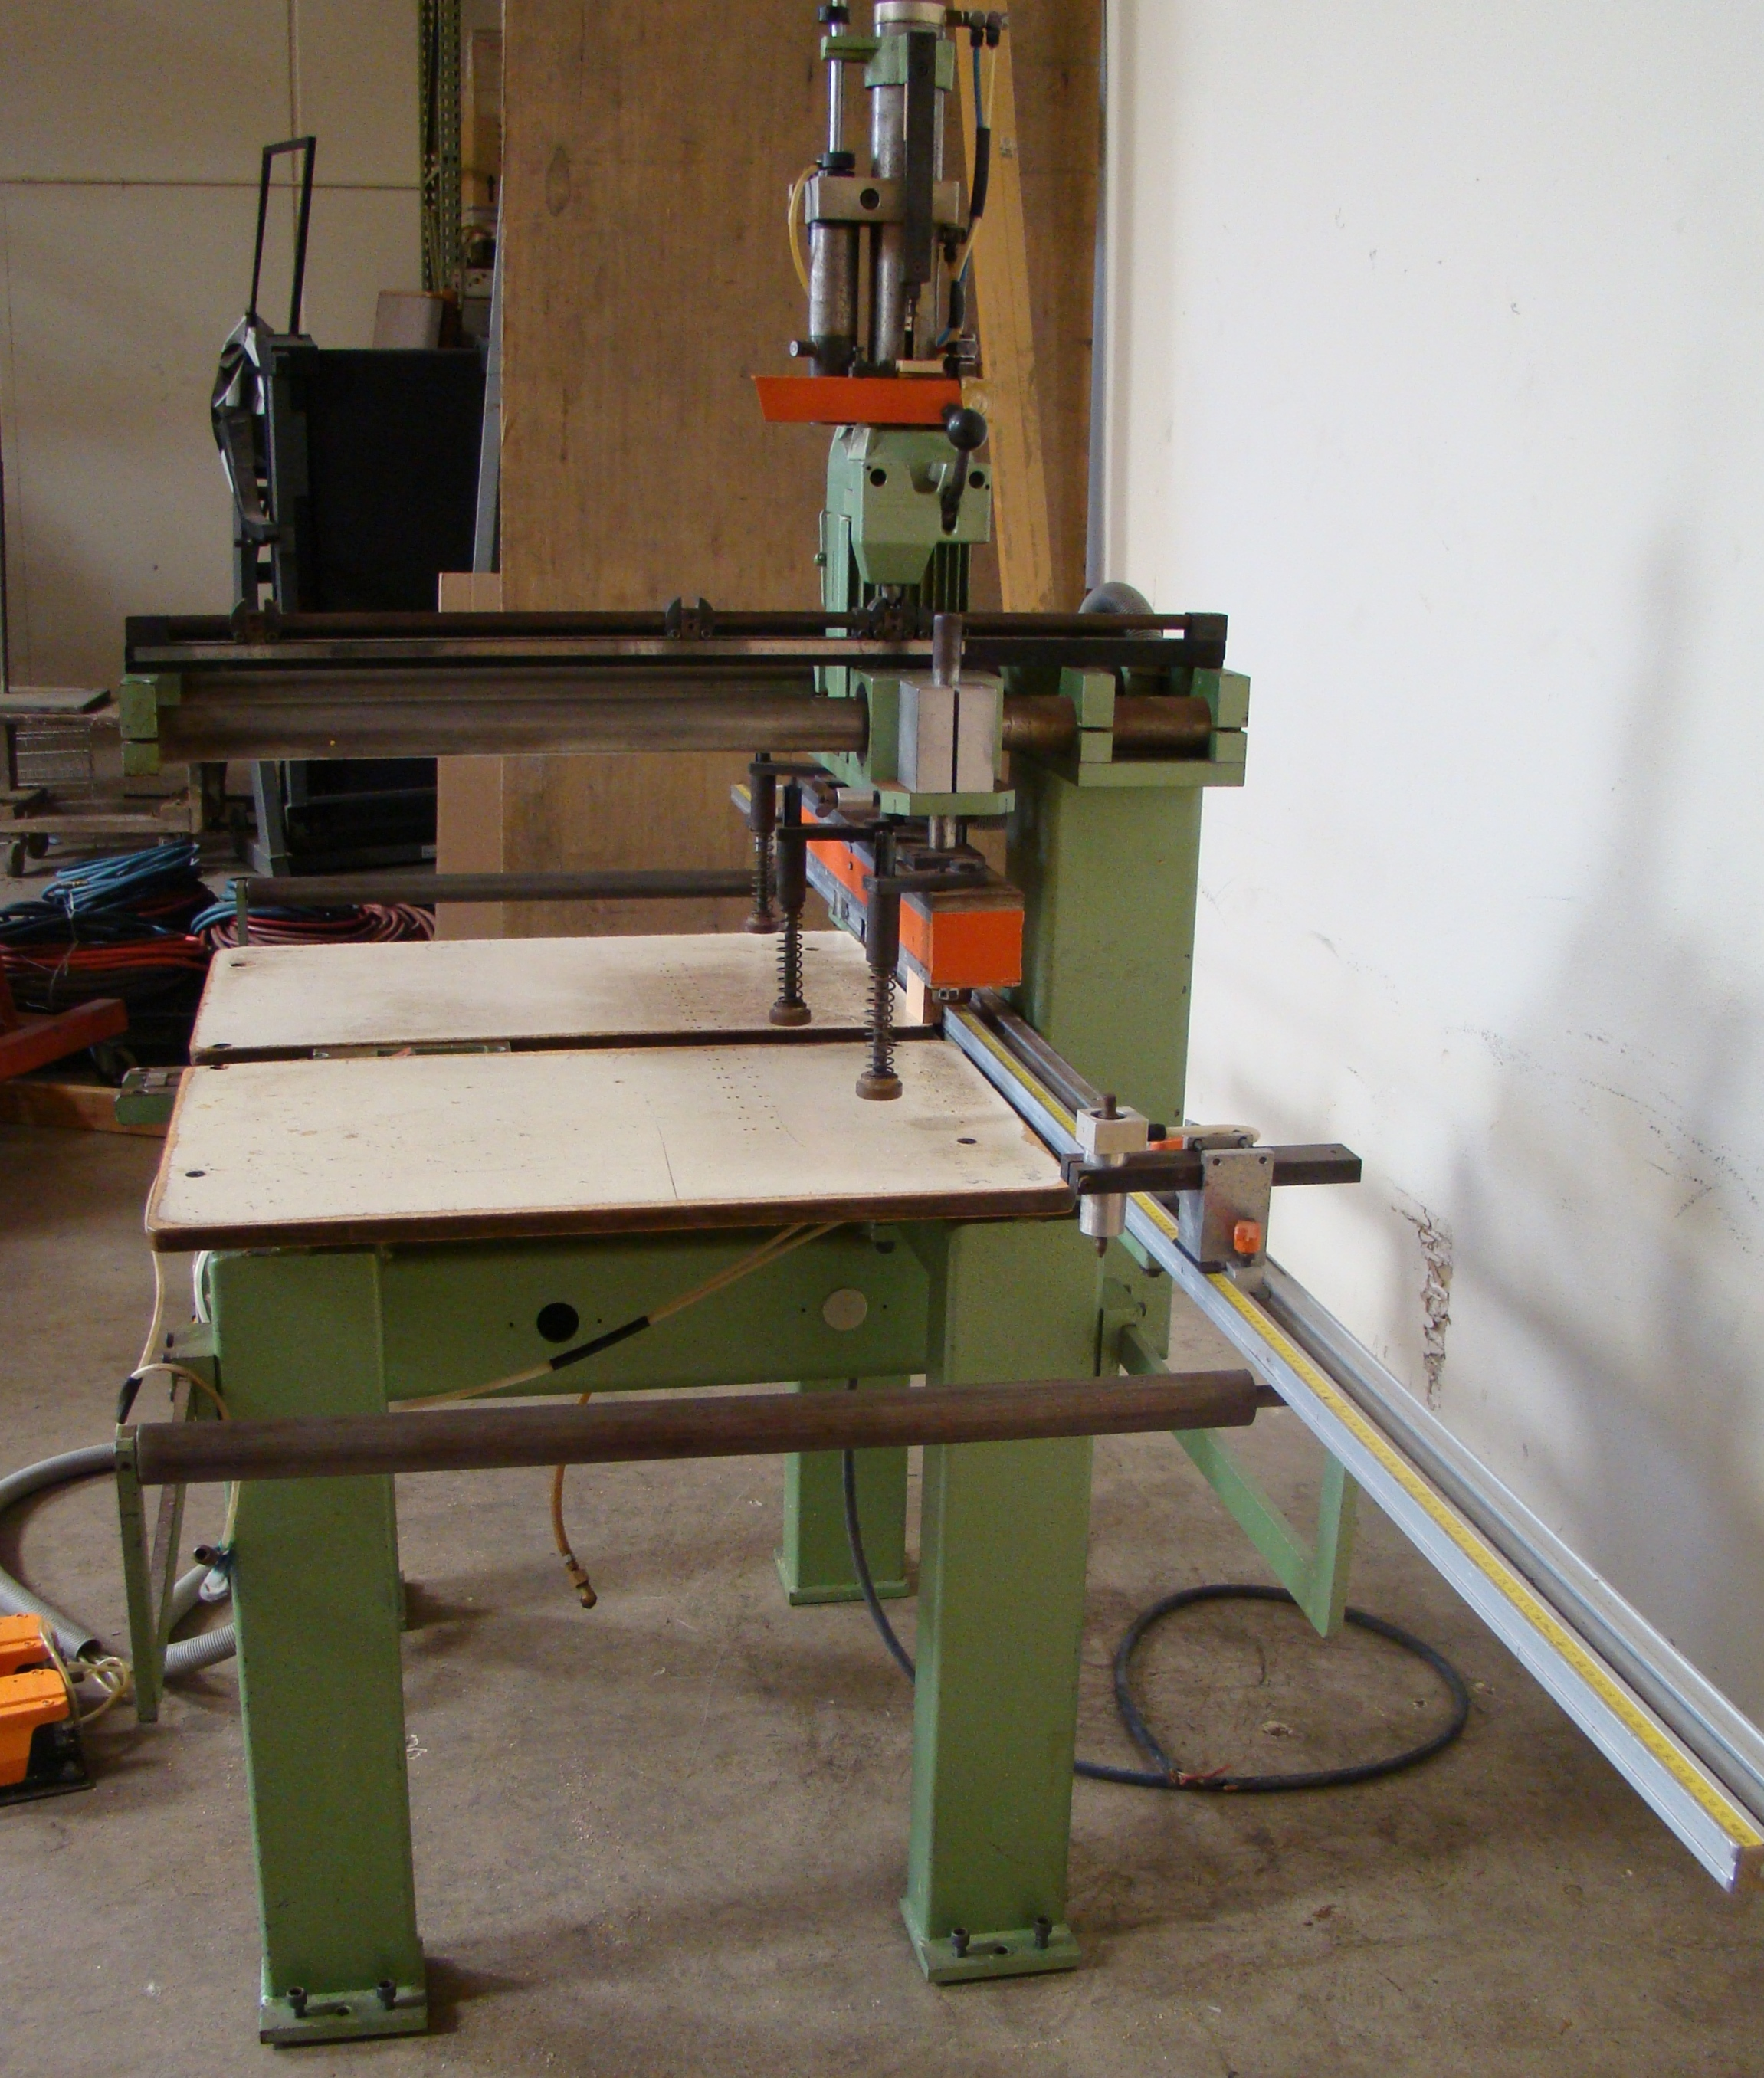 Ayen 21 Spindle Pneumatic Line Boring Machine with foot pedal, 230/460 Volt 3PH - Image 9 of 9